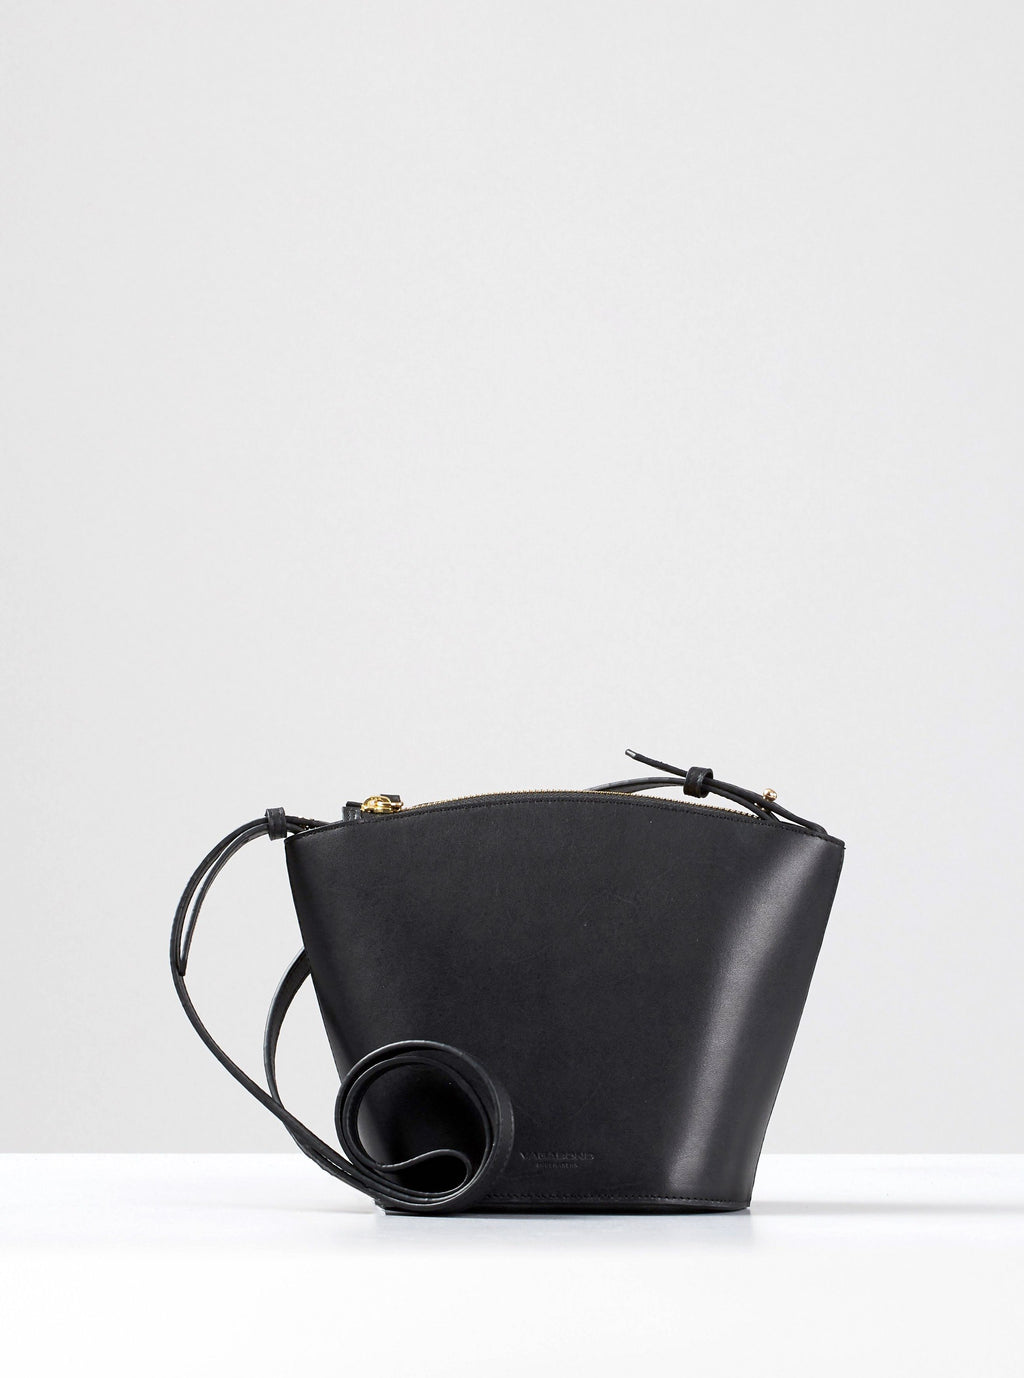 Vagabond - Aruba Crossbody / Black